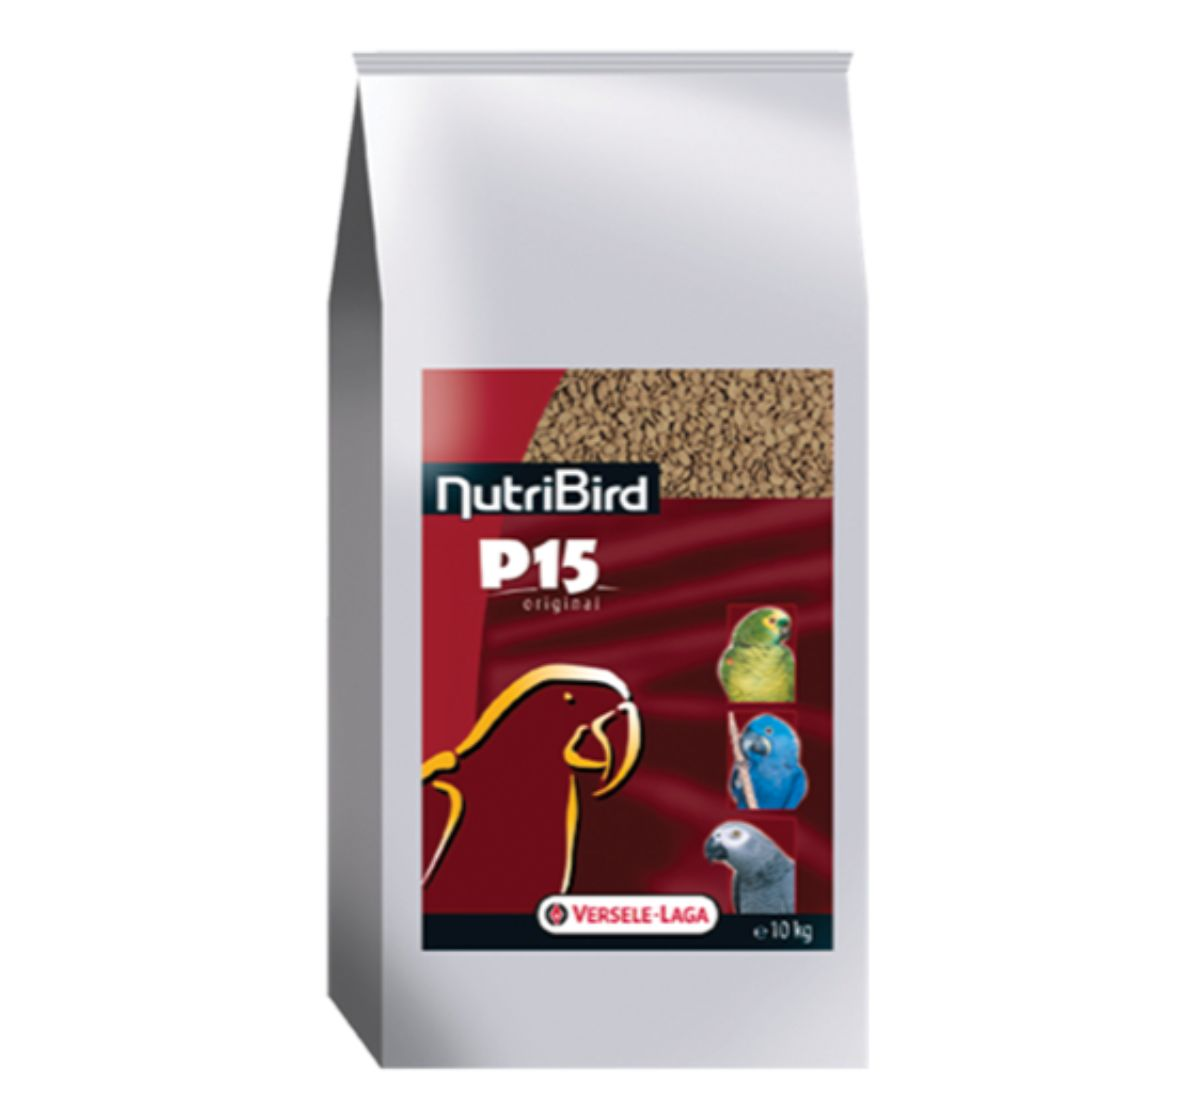 Versele Laga NutriBird P15 Pellets Original Bird Food -10 kg